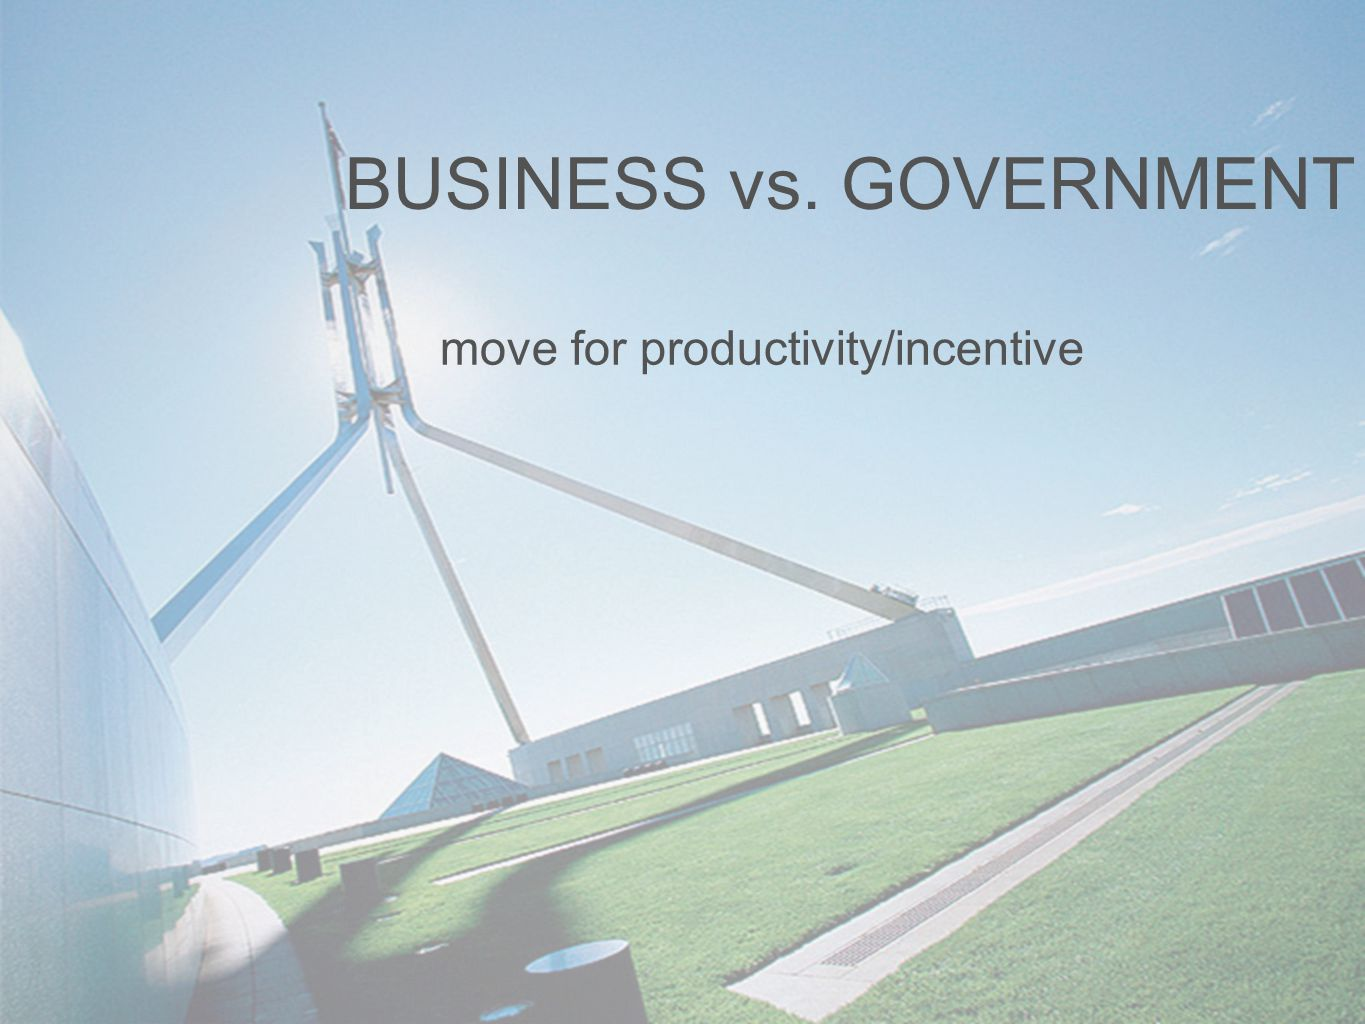 BUSINESS vs. GOVERNMENT move for productivity/incentive